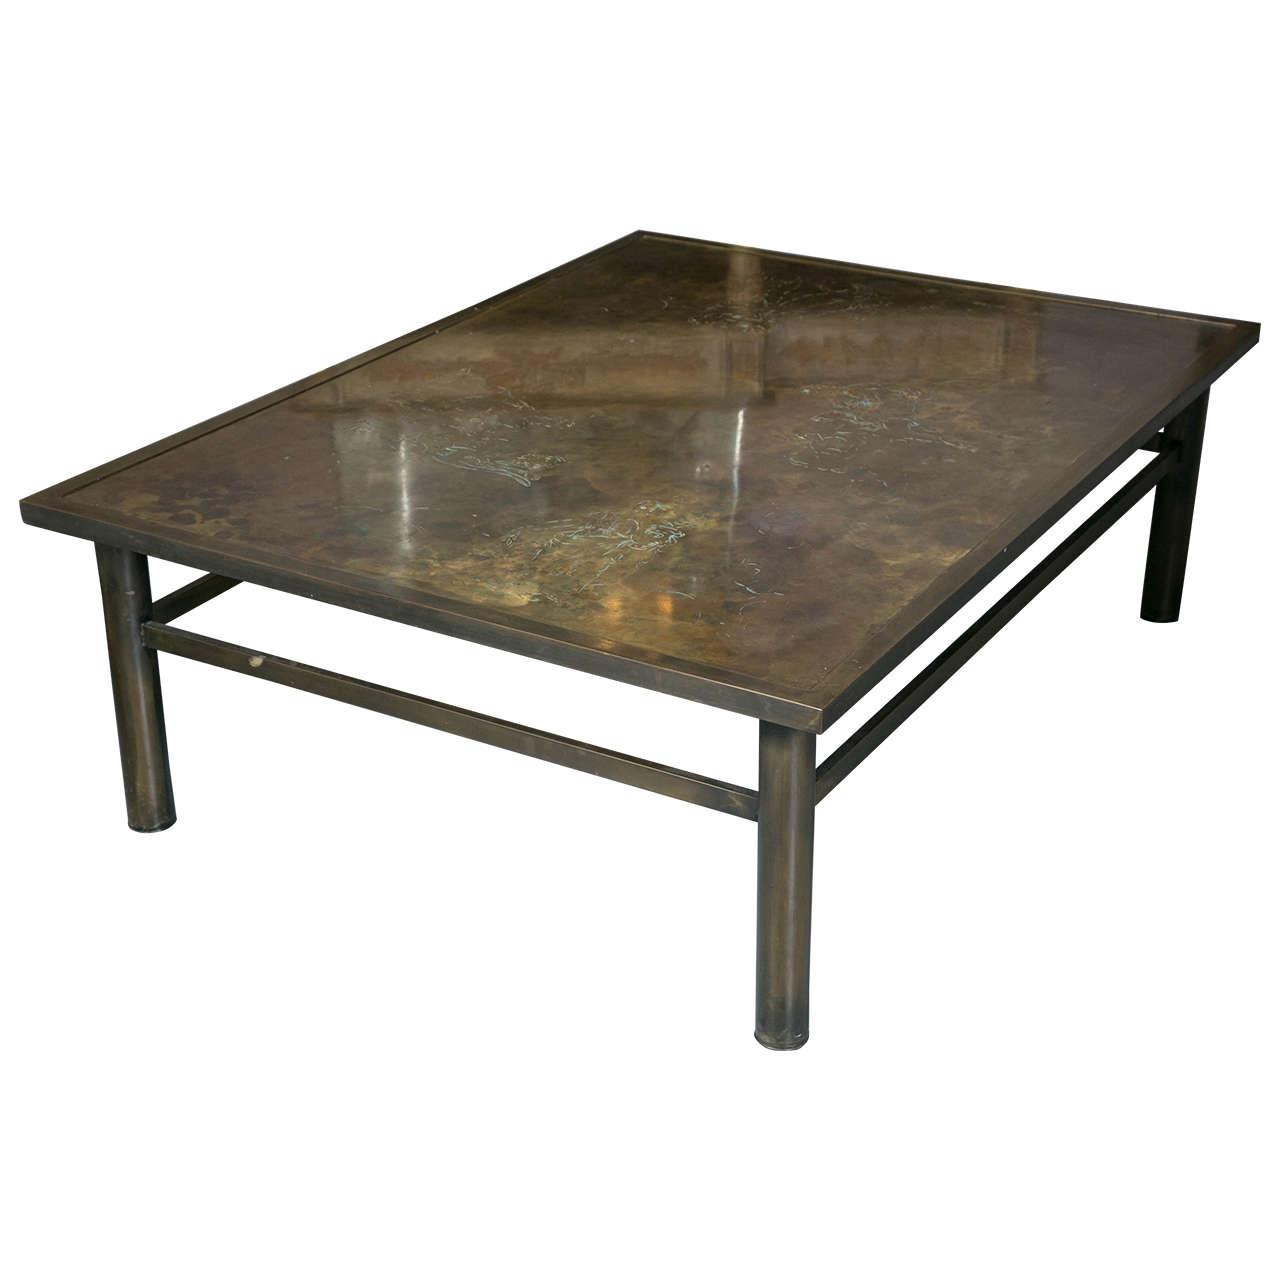 Philip kelvin laverne bronze coffee table chairish geotapseo Image collections